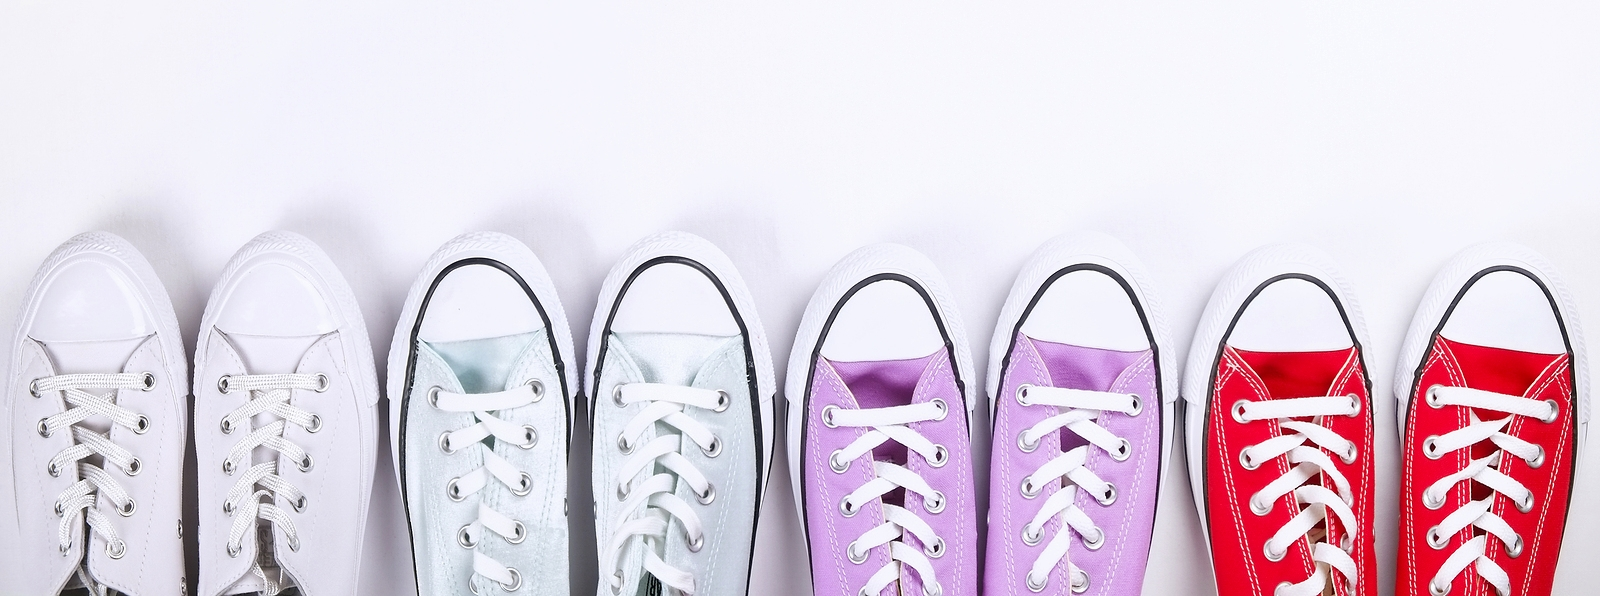 Four pairs of converse sneakers in different colors as an example of template based dental websites.